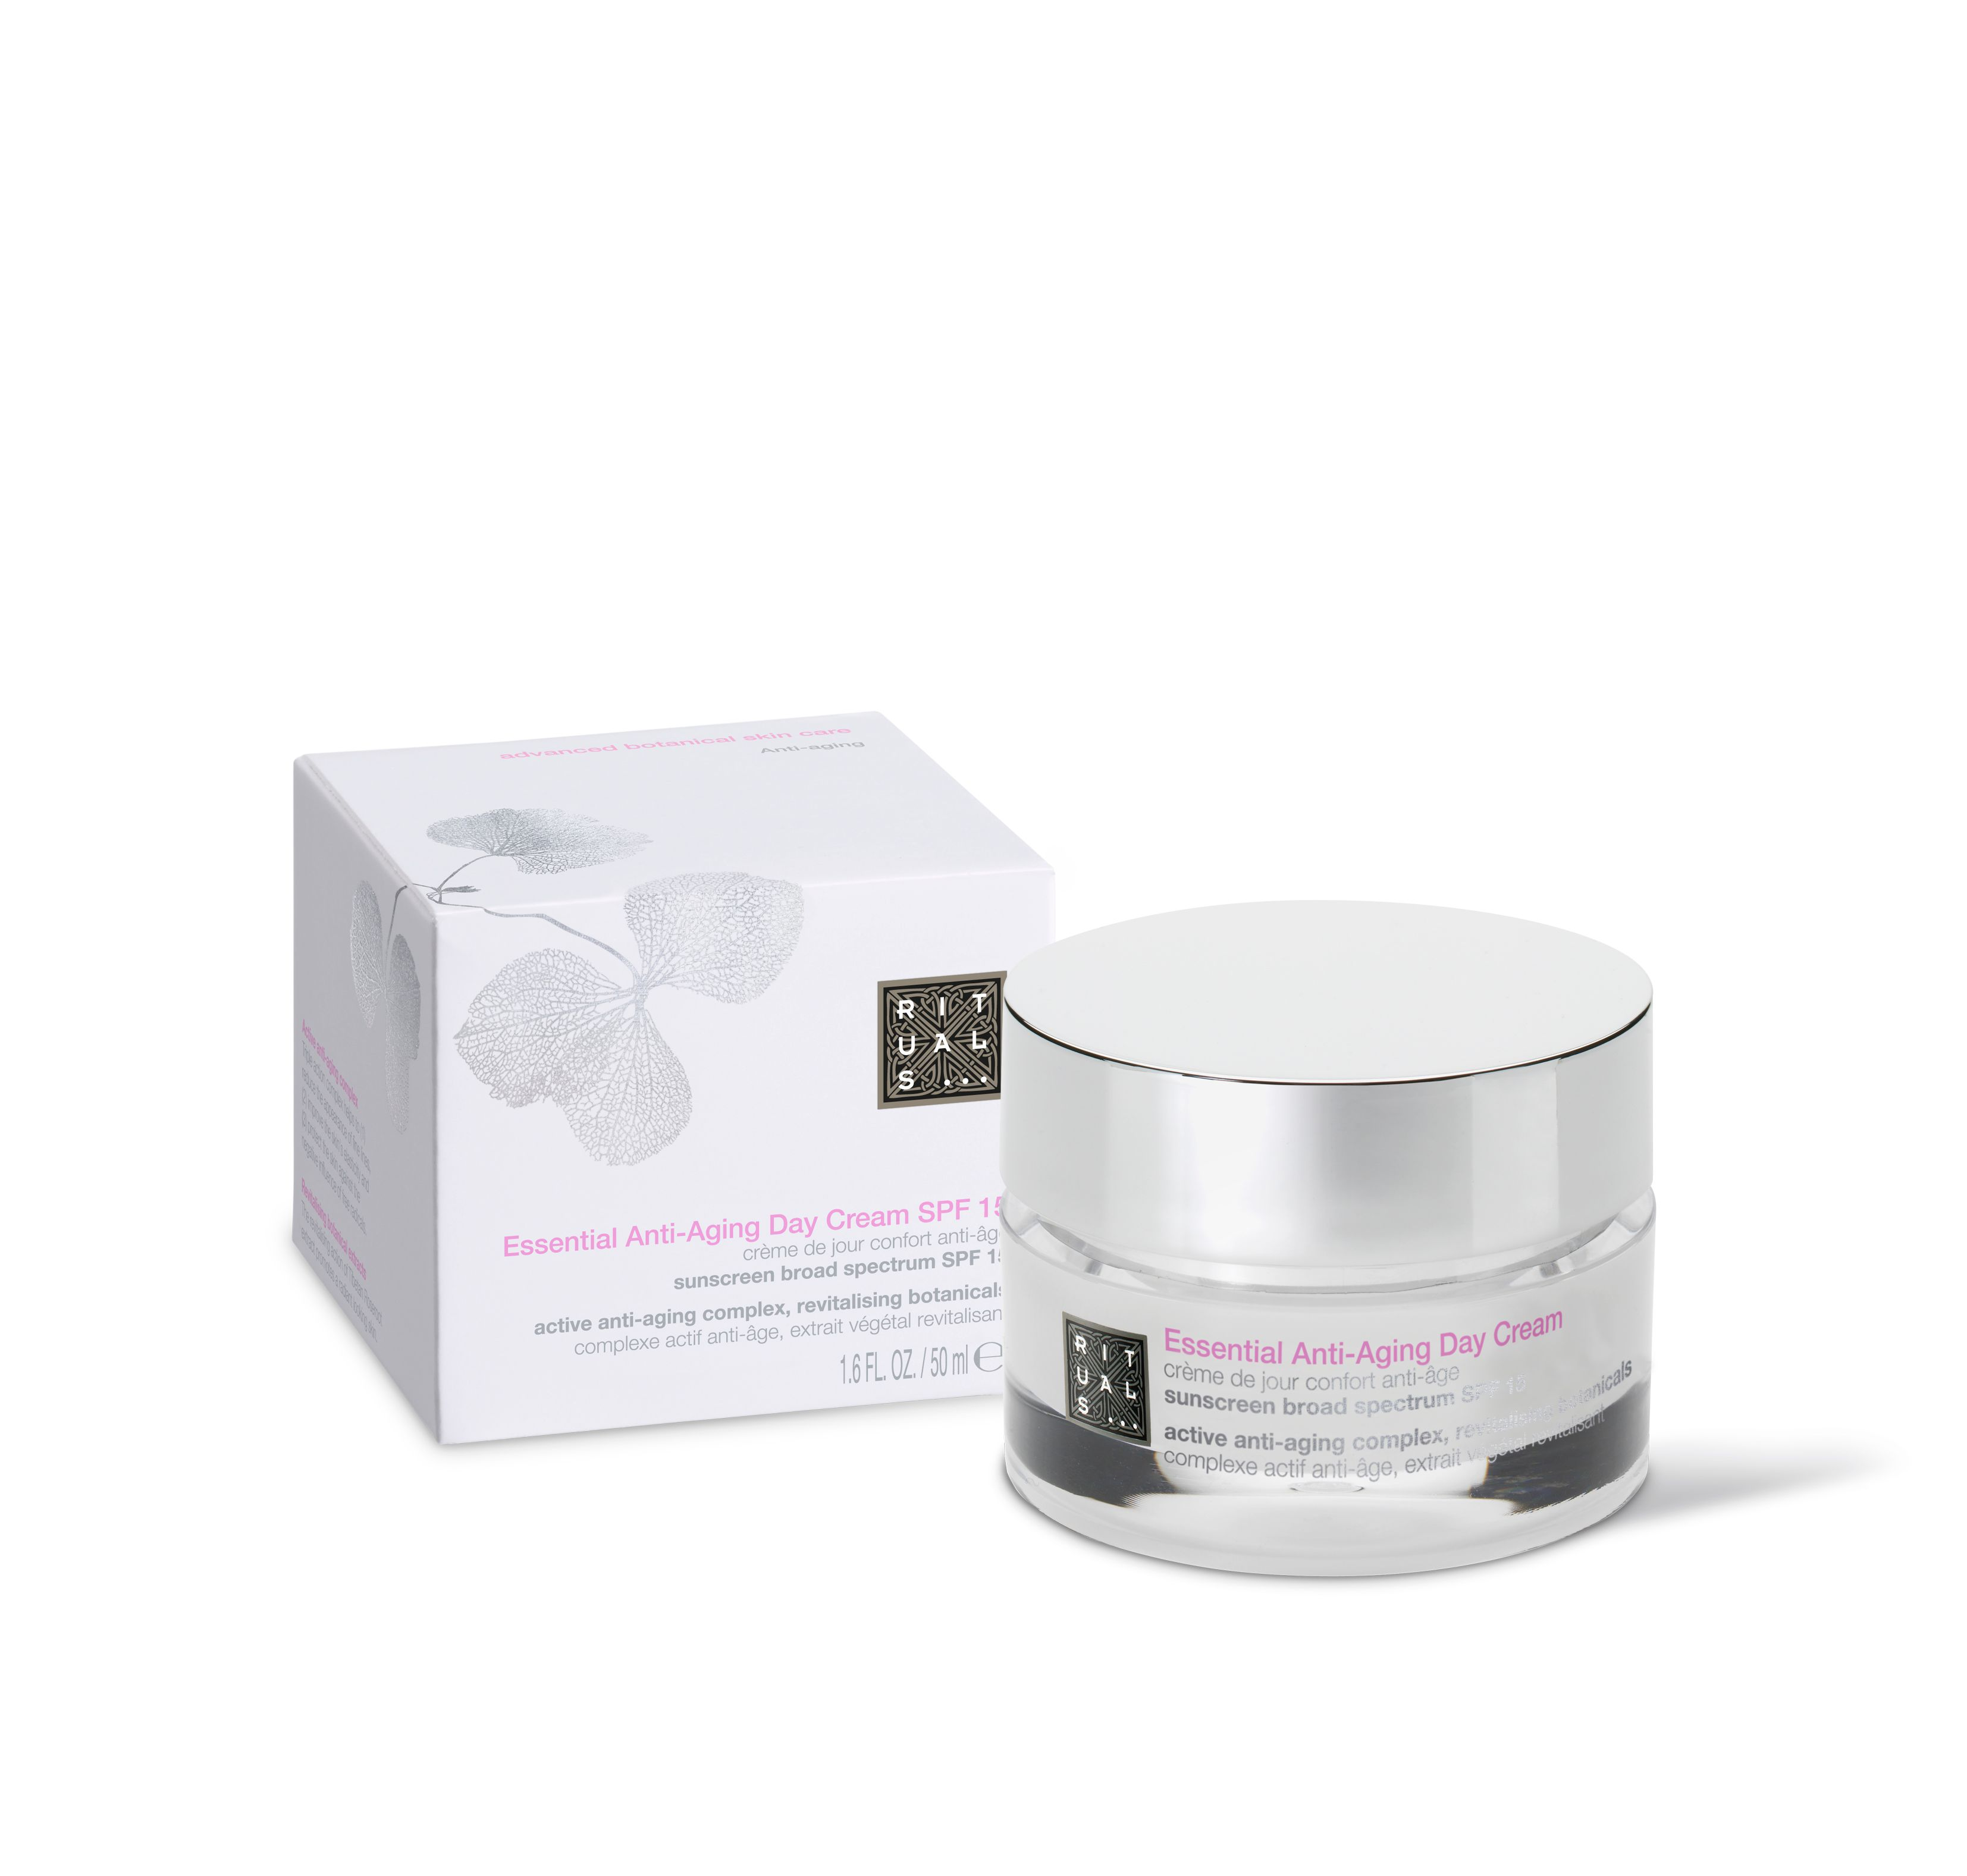 Essential Anti-Aging Day Cream SPF 15